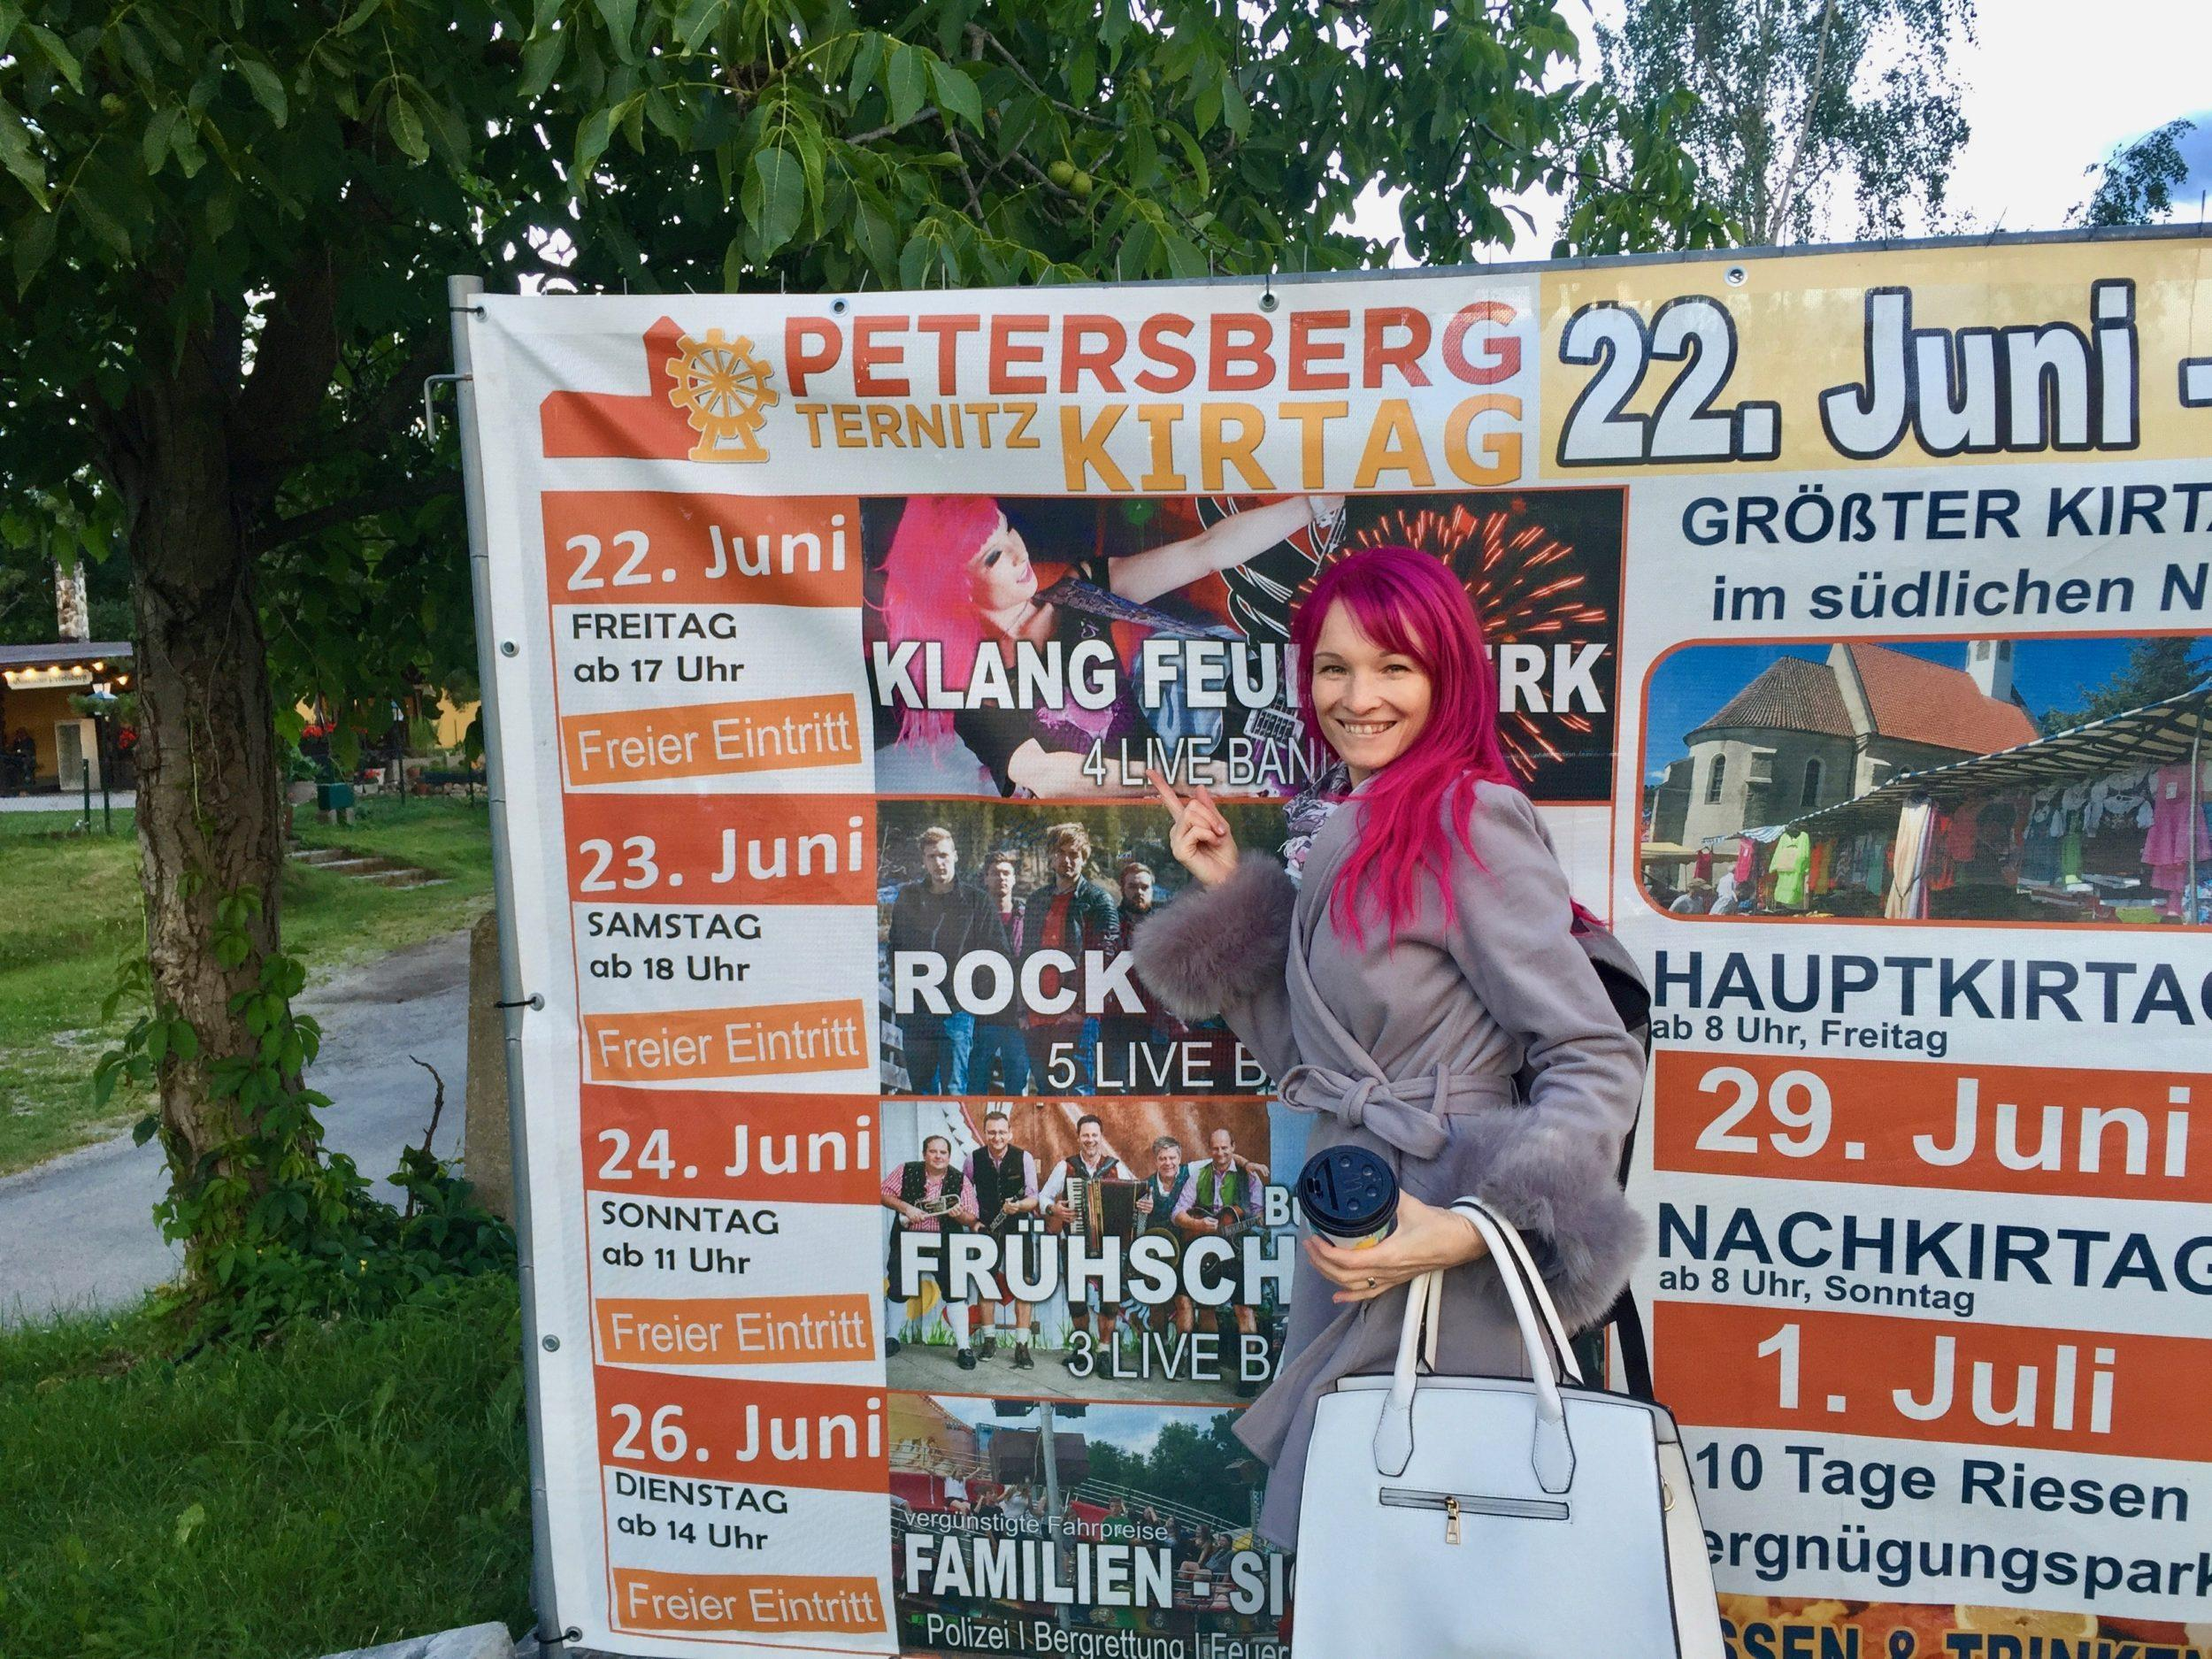 Danke Petersberg, Ternitz!